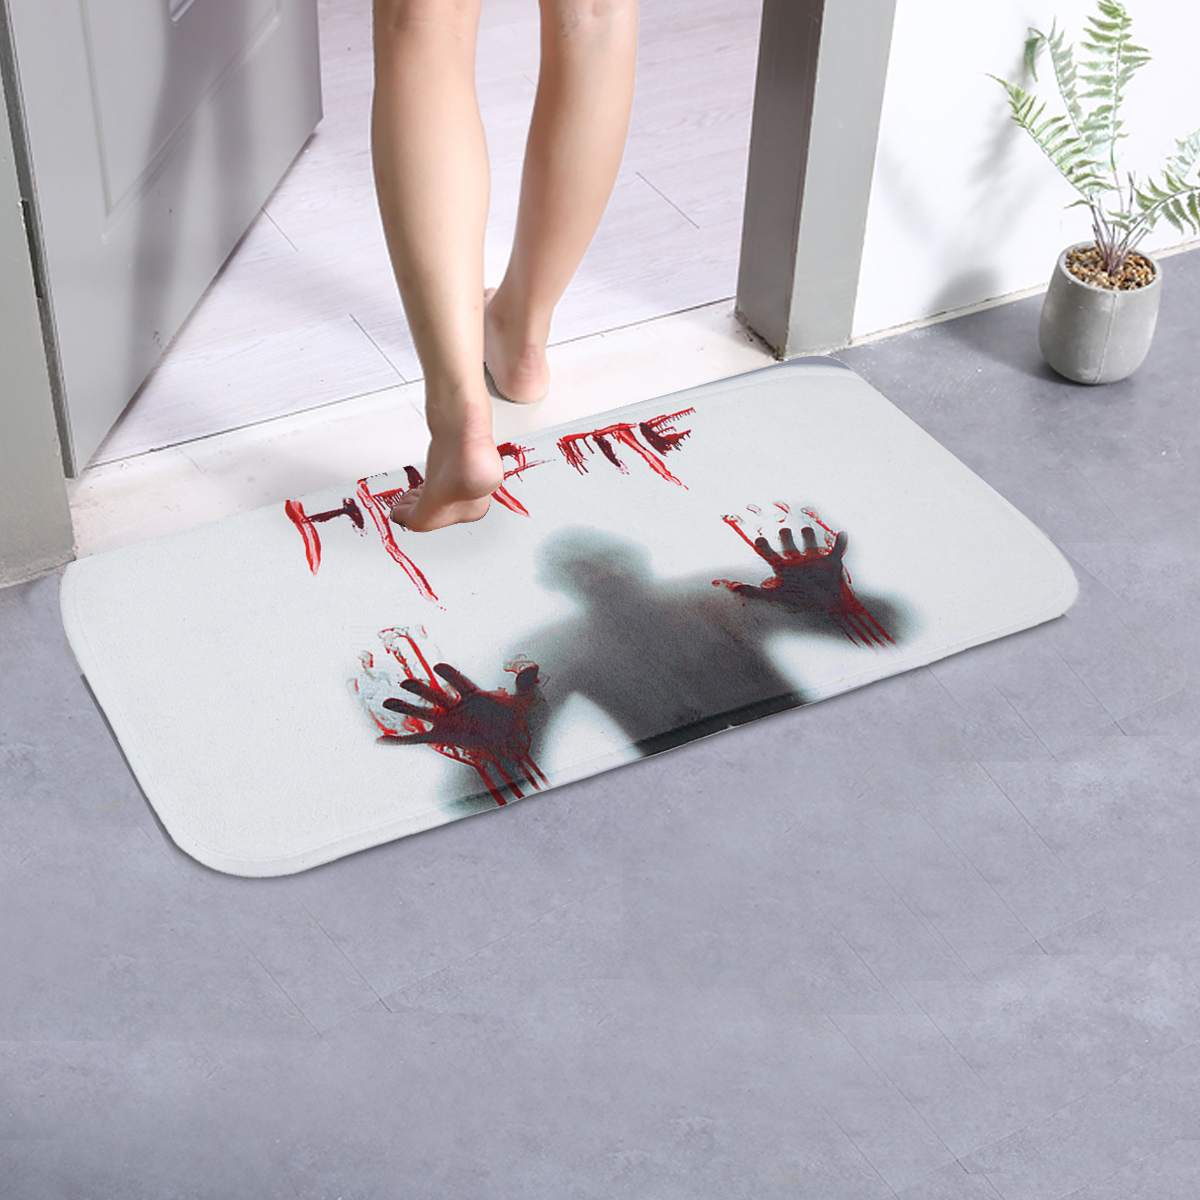 66.5*23cm Halloween Design Stair Pad Anti-Slip Carpet Kitchen Bathroom Floor Mat